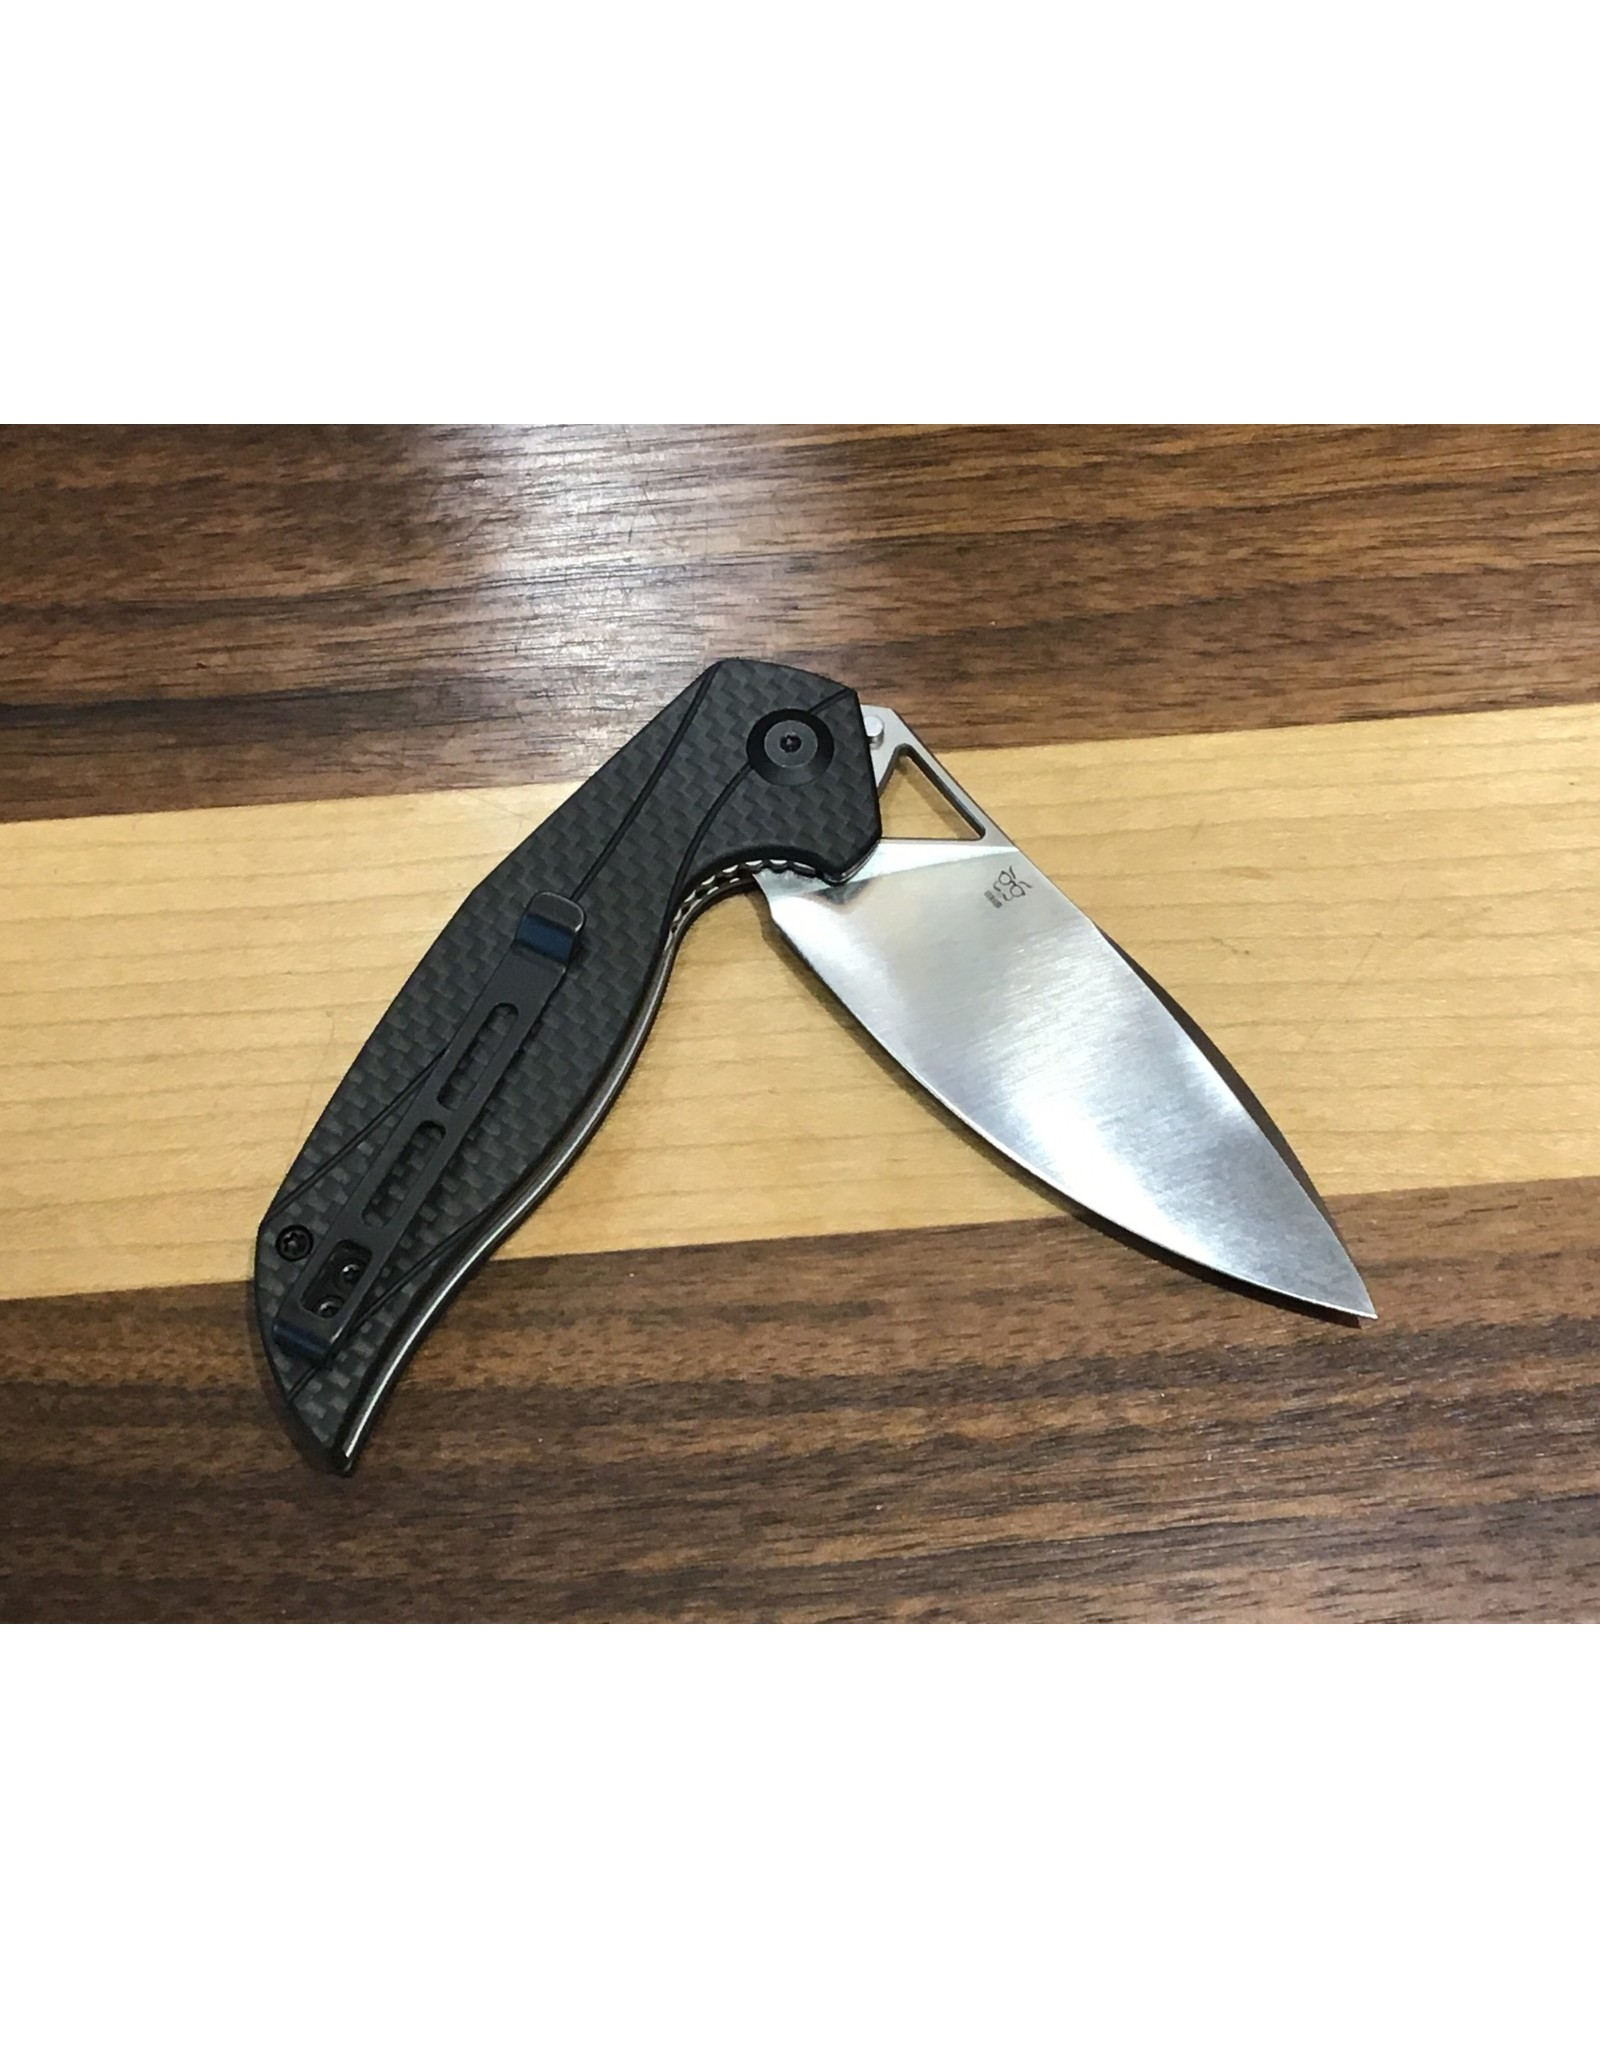 Civivi Civivi Anthropos Carbon Fiber over G10 - C903C